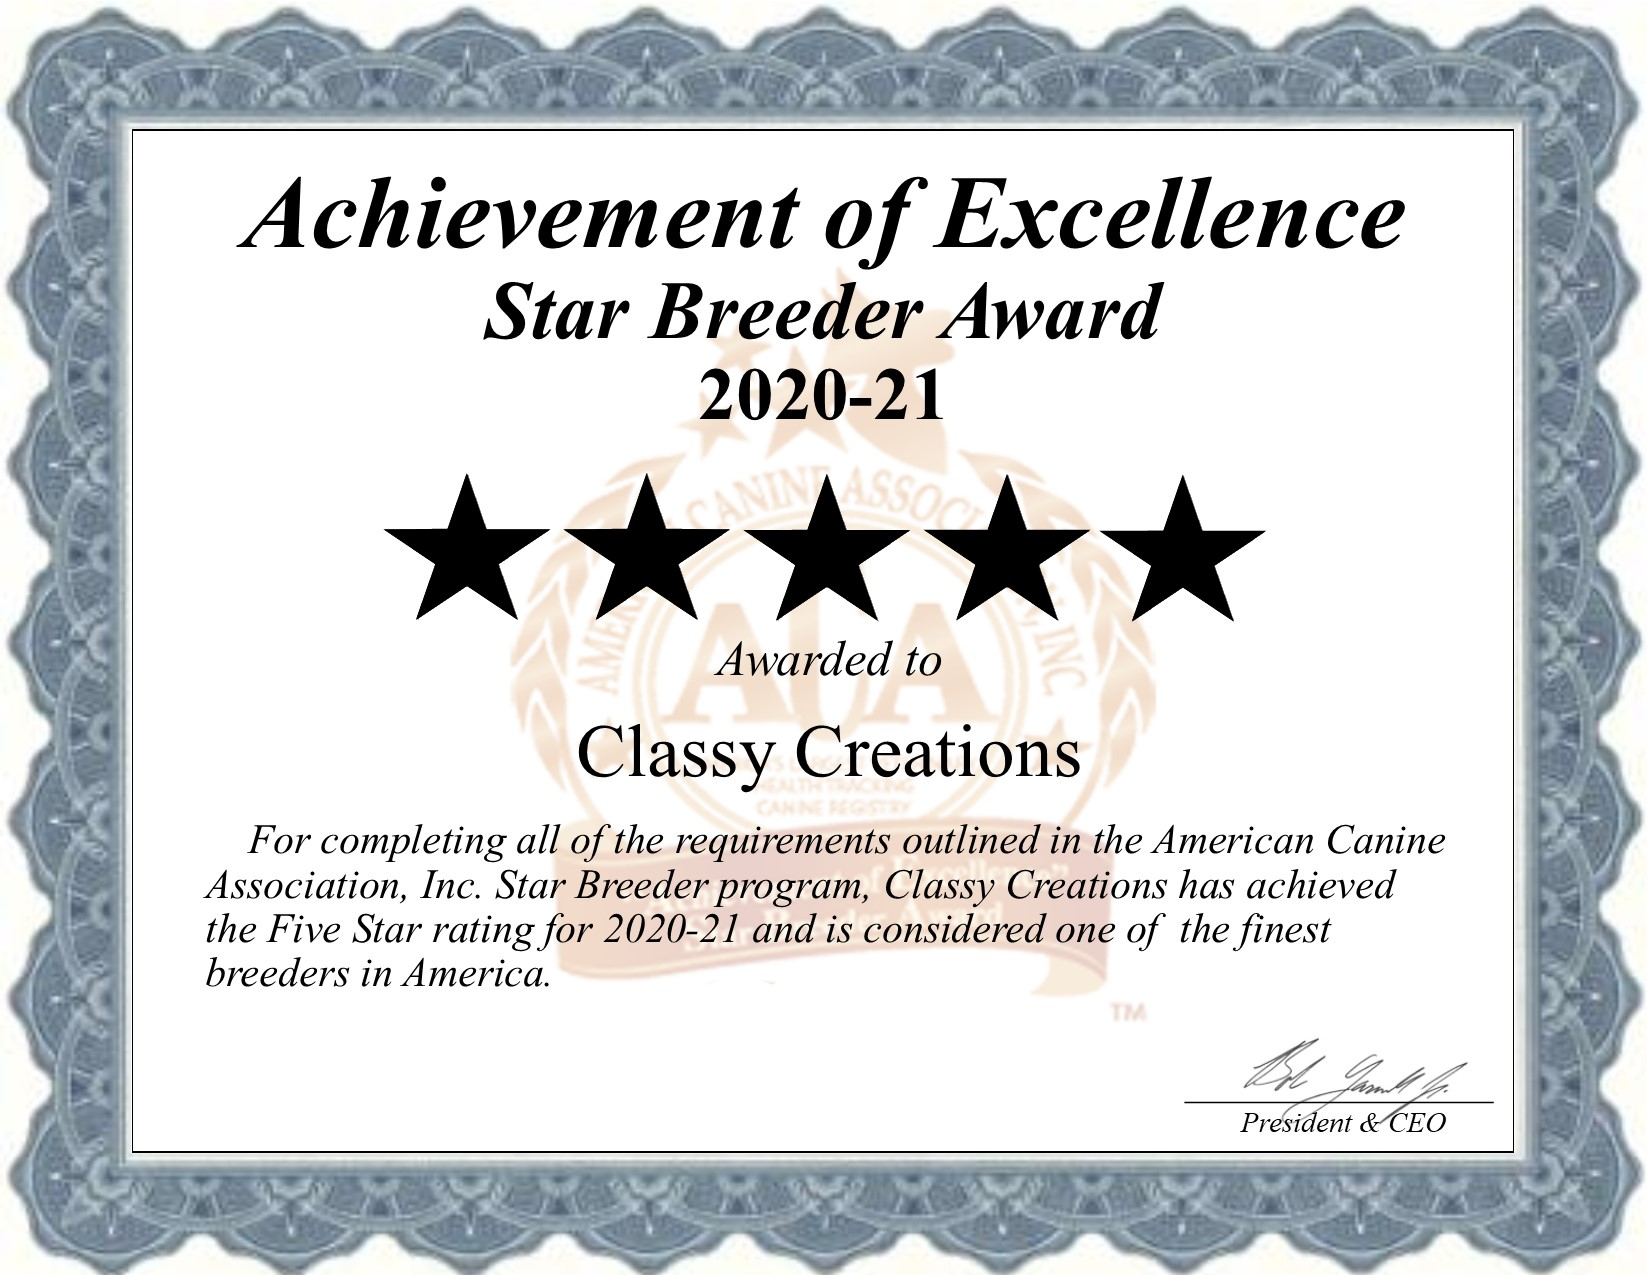 Classy, Creations Kennels, dog, breeder, star, certificate, Classy-Creations Kennels, Lyons, NY, New York, puppy, dog, kennels, mill, puppymill, usda, 5-star, ACA, ICA, registered, show handler, Yorkie, 21-A-0160, 21A0160